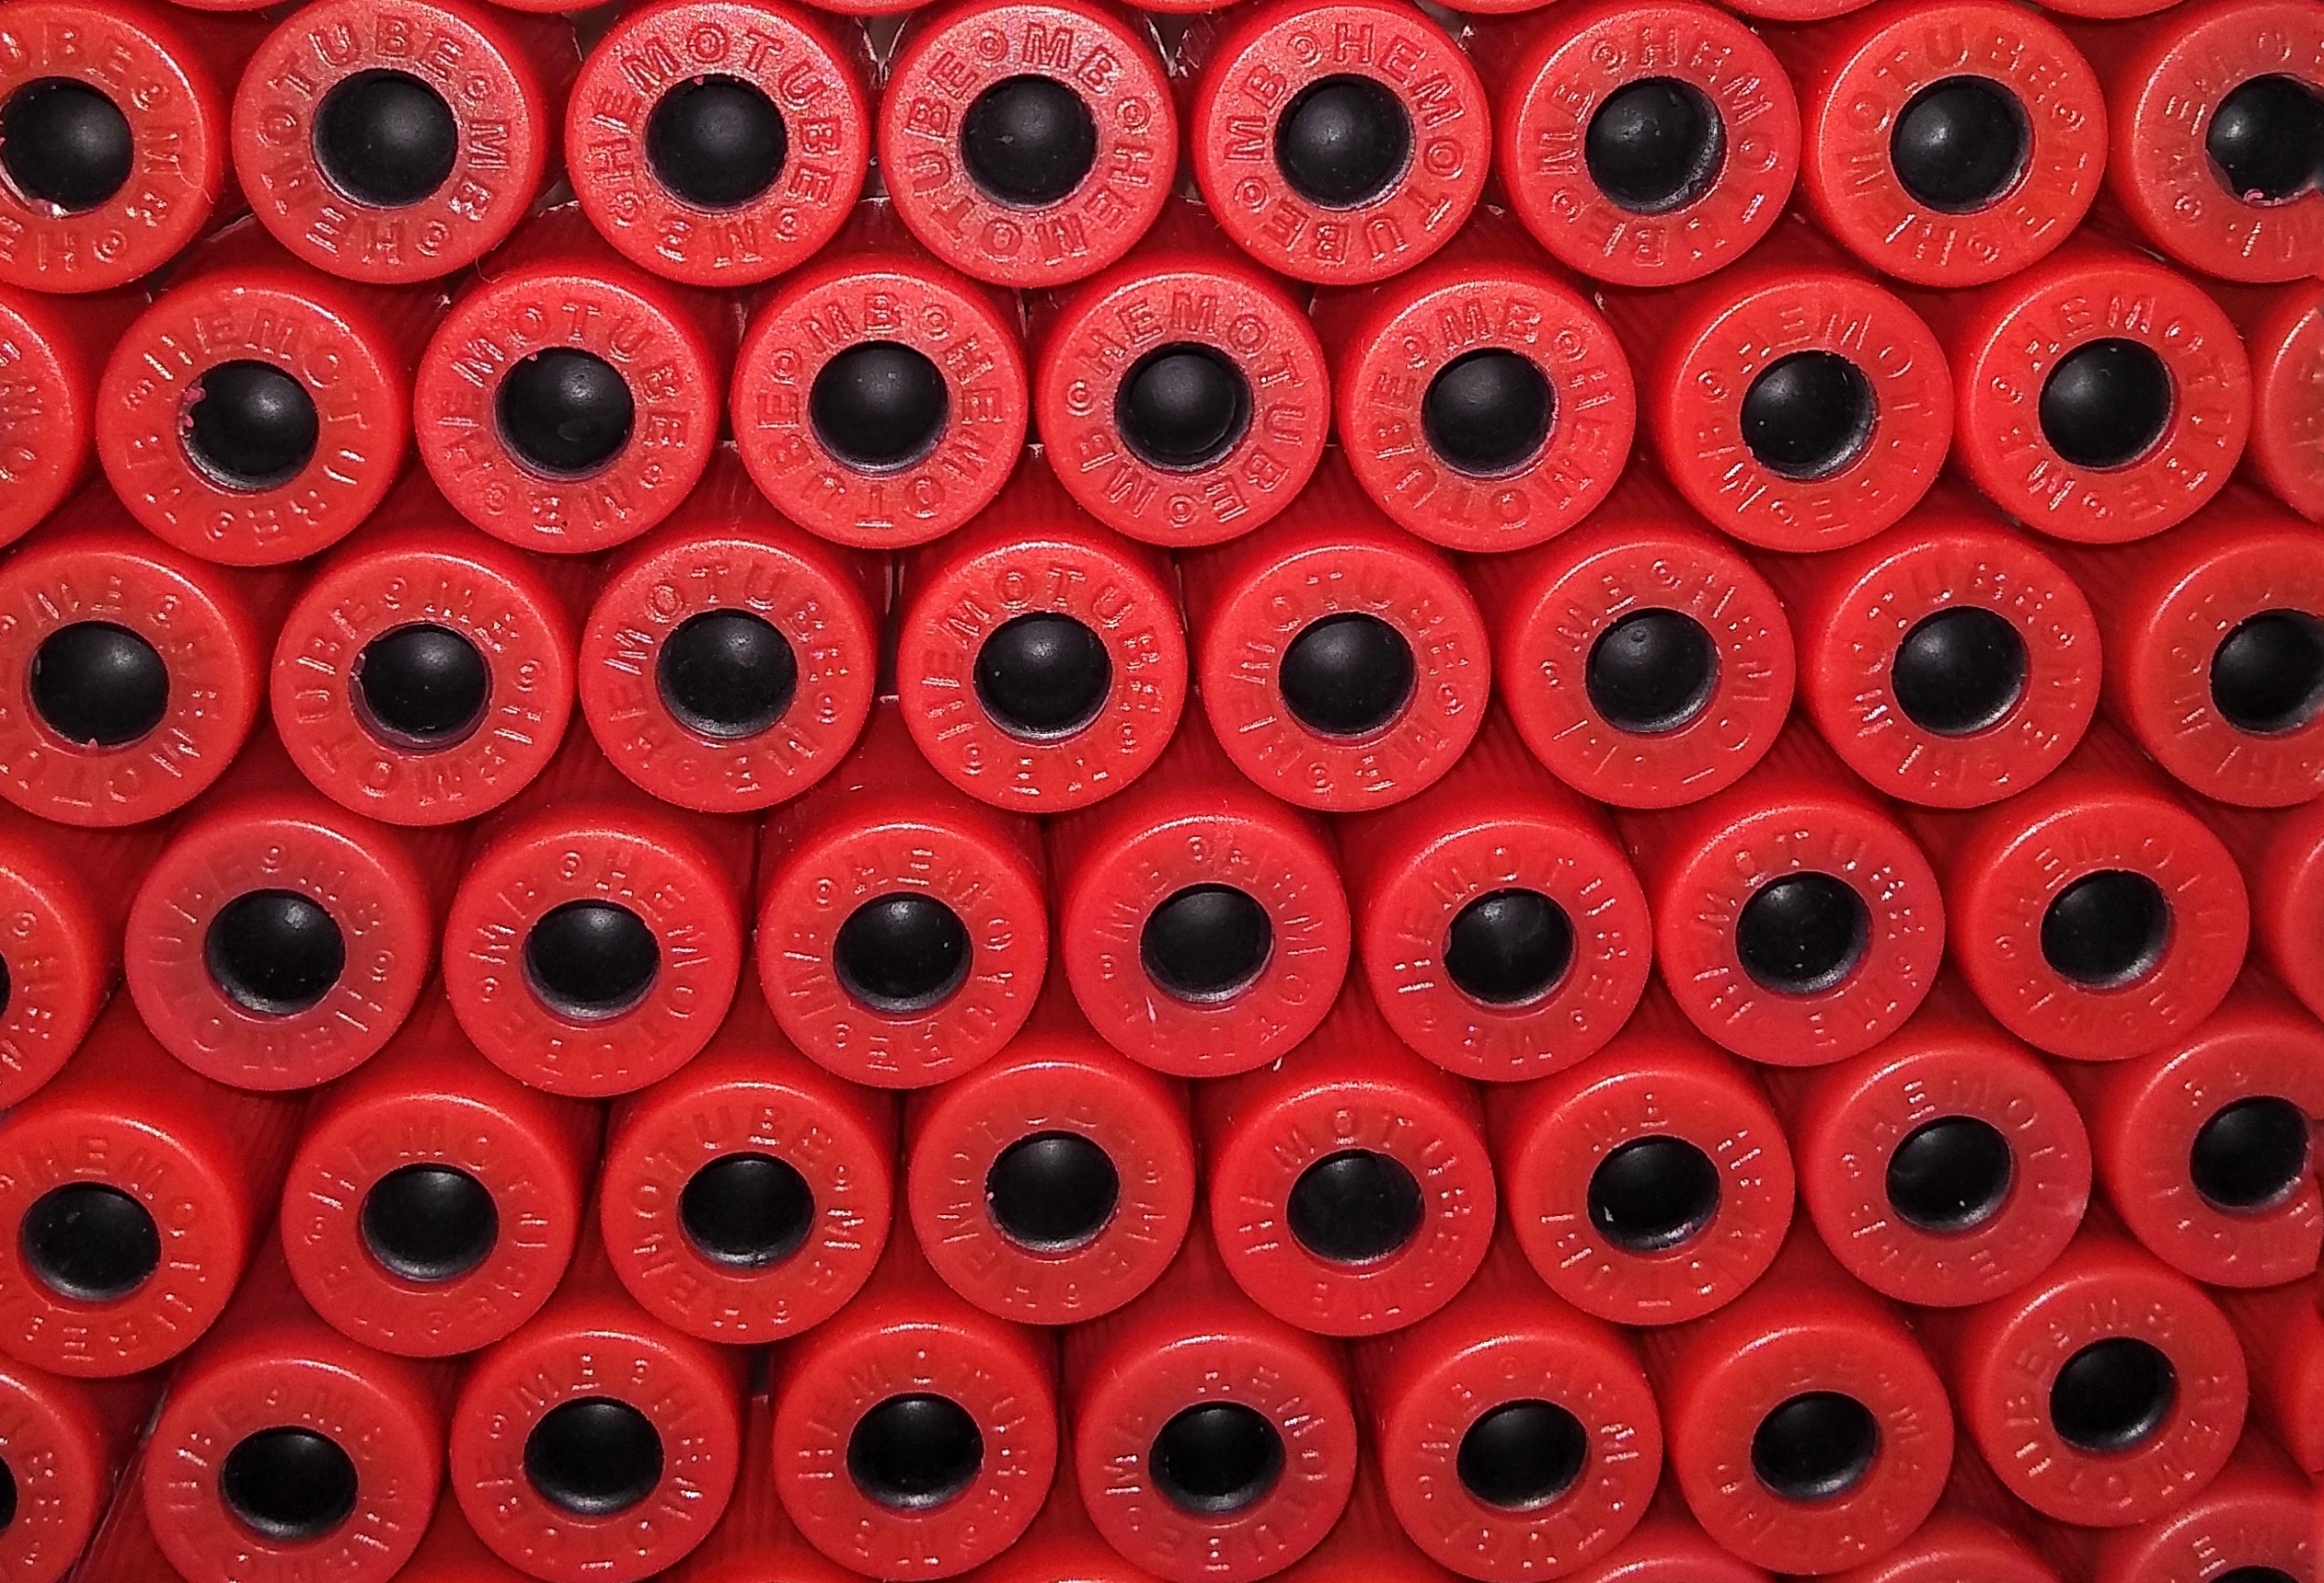 Red vacutainers in a pattern